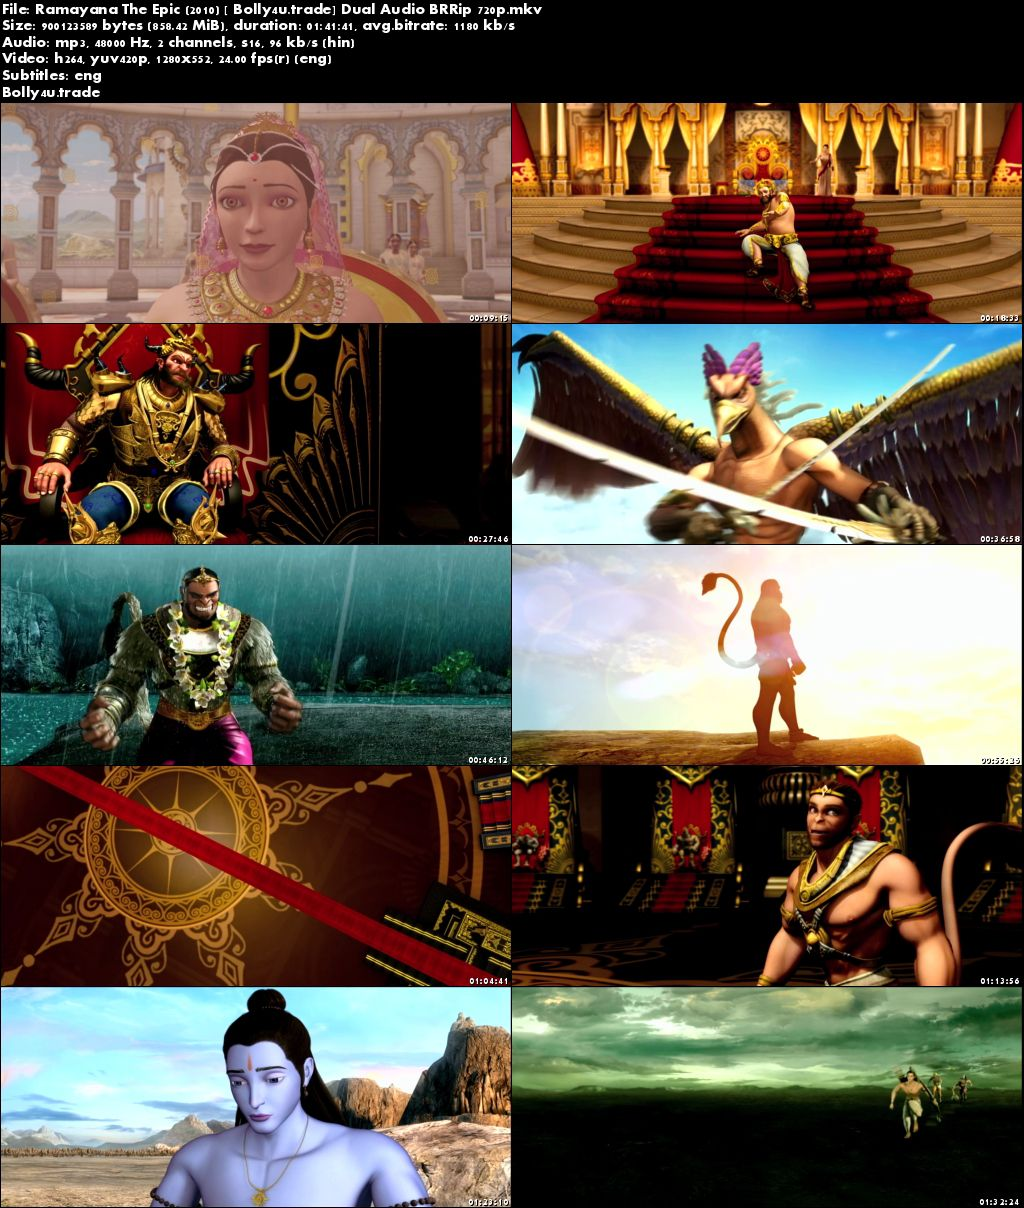 Ramayana The Epic 2010 BluRay 300MB Hindi 480p Download